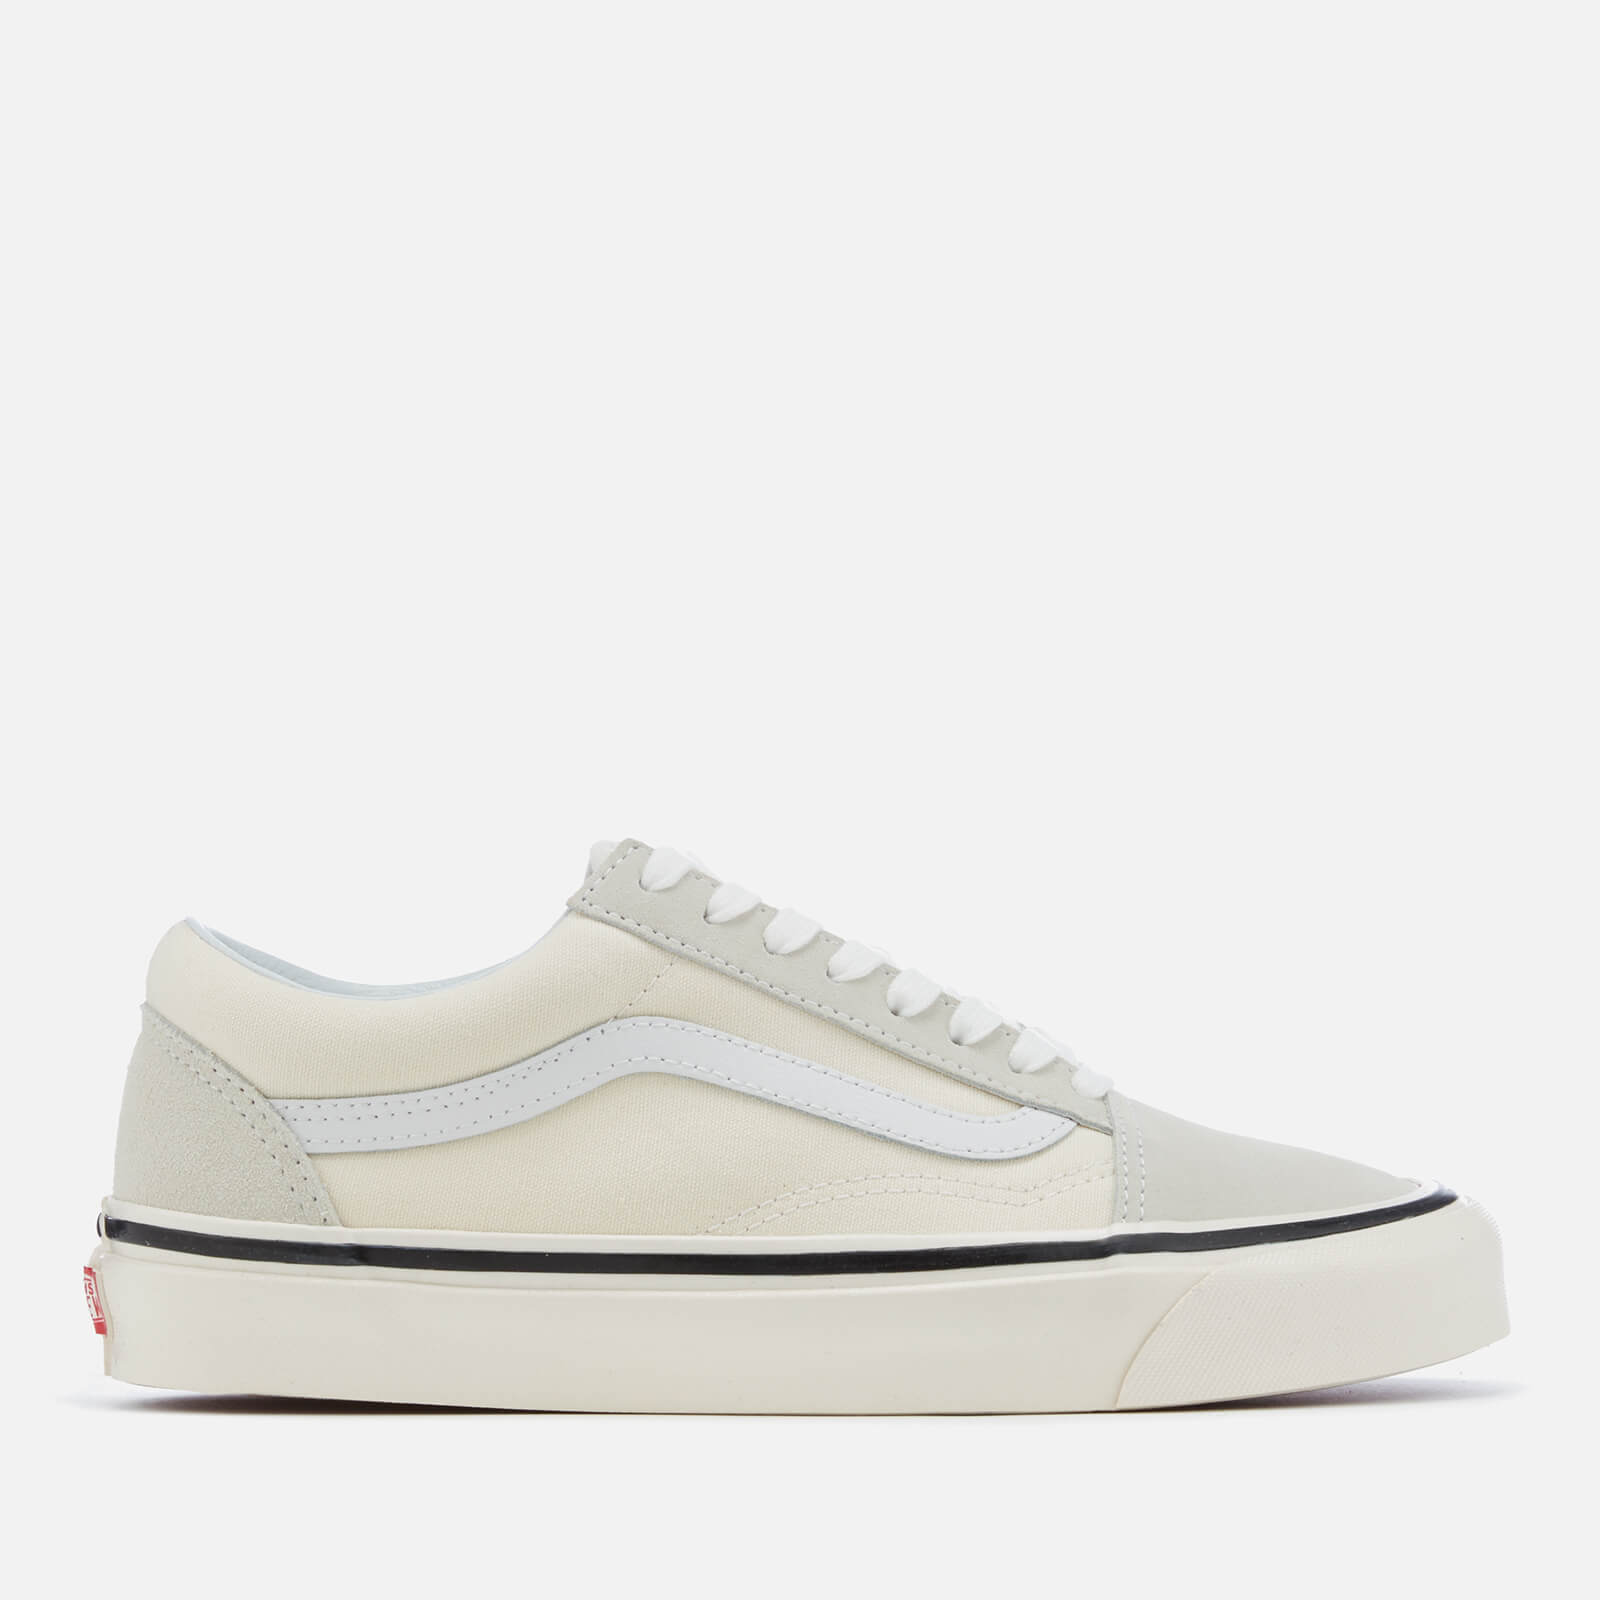 43dab1b29f1 Vans Anaheim Old Skool 36 DX Trainers - Classic White - Free UK Delivery  over £50